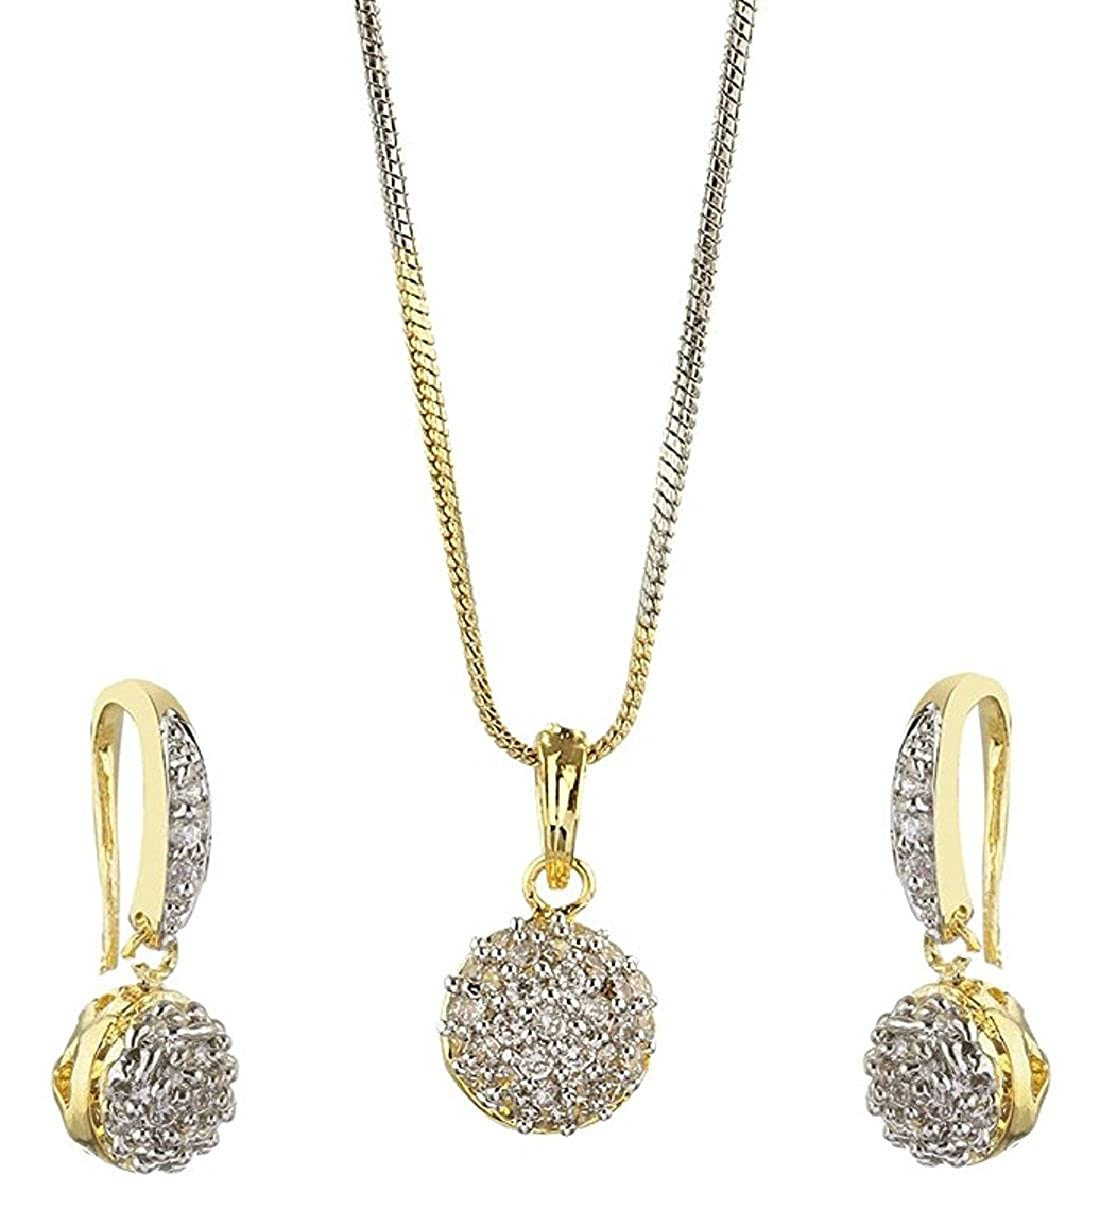 9ac1e2e7e Buy Aabhu Gold Plated Trendy Ball Design American Diamond Pendant Set  Necklace Set with Earrings For Women And Girls Online at Low Prices in  India | Amazon ...